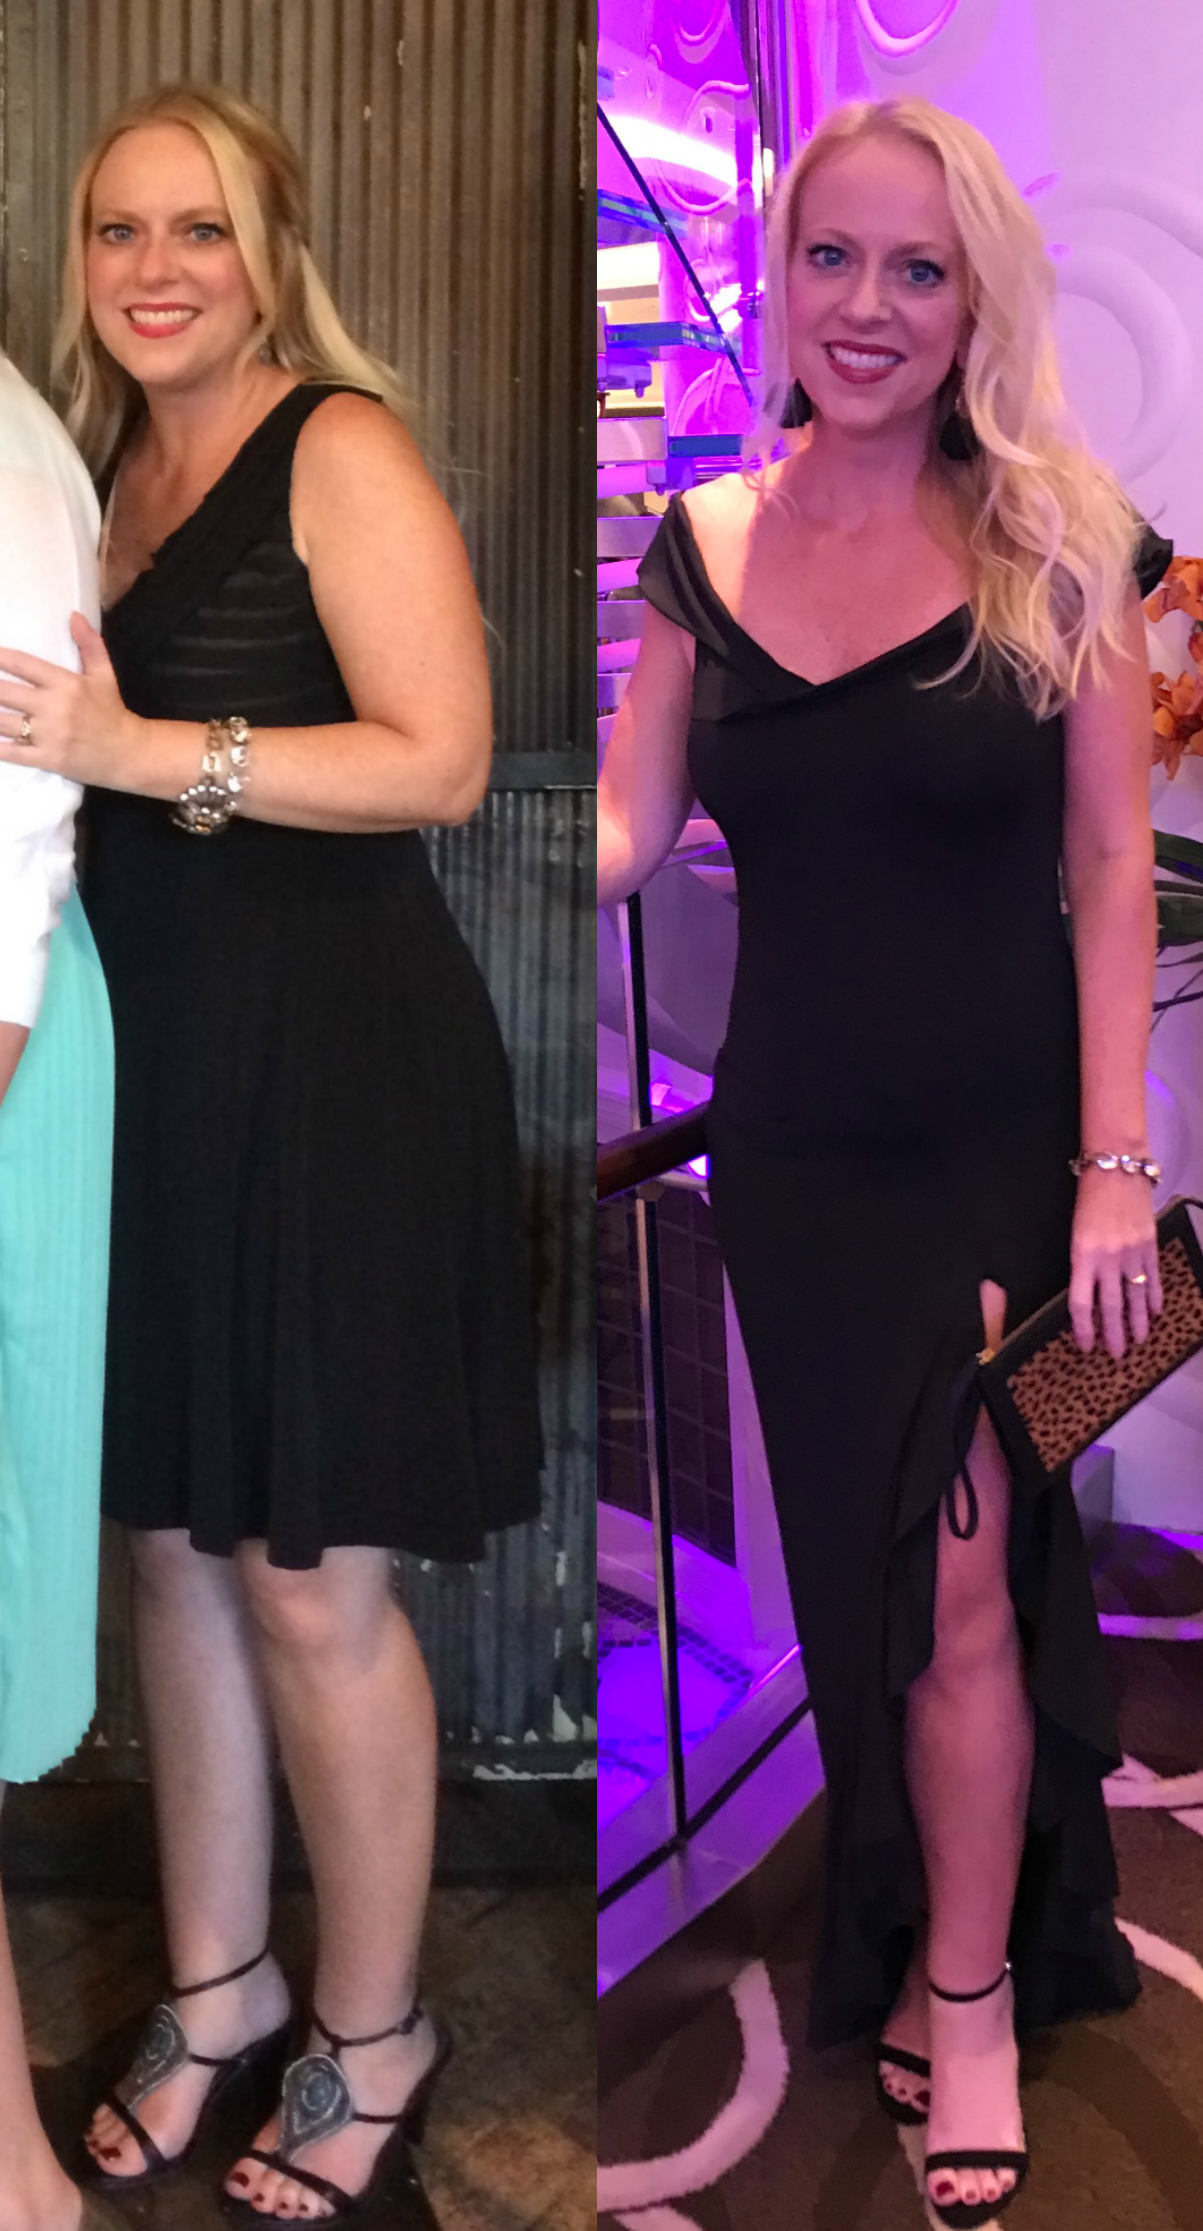 Keto Diet: What I Have Experienced After 12 Months on a Ketogenic Diet